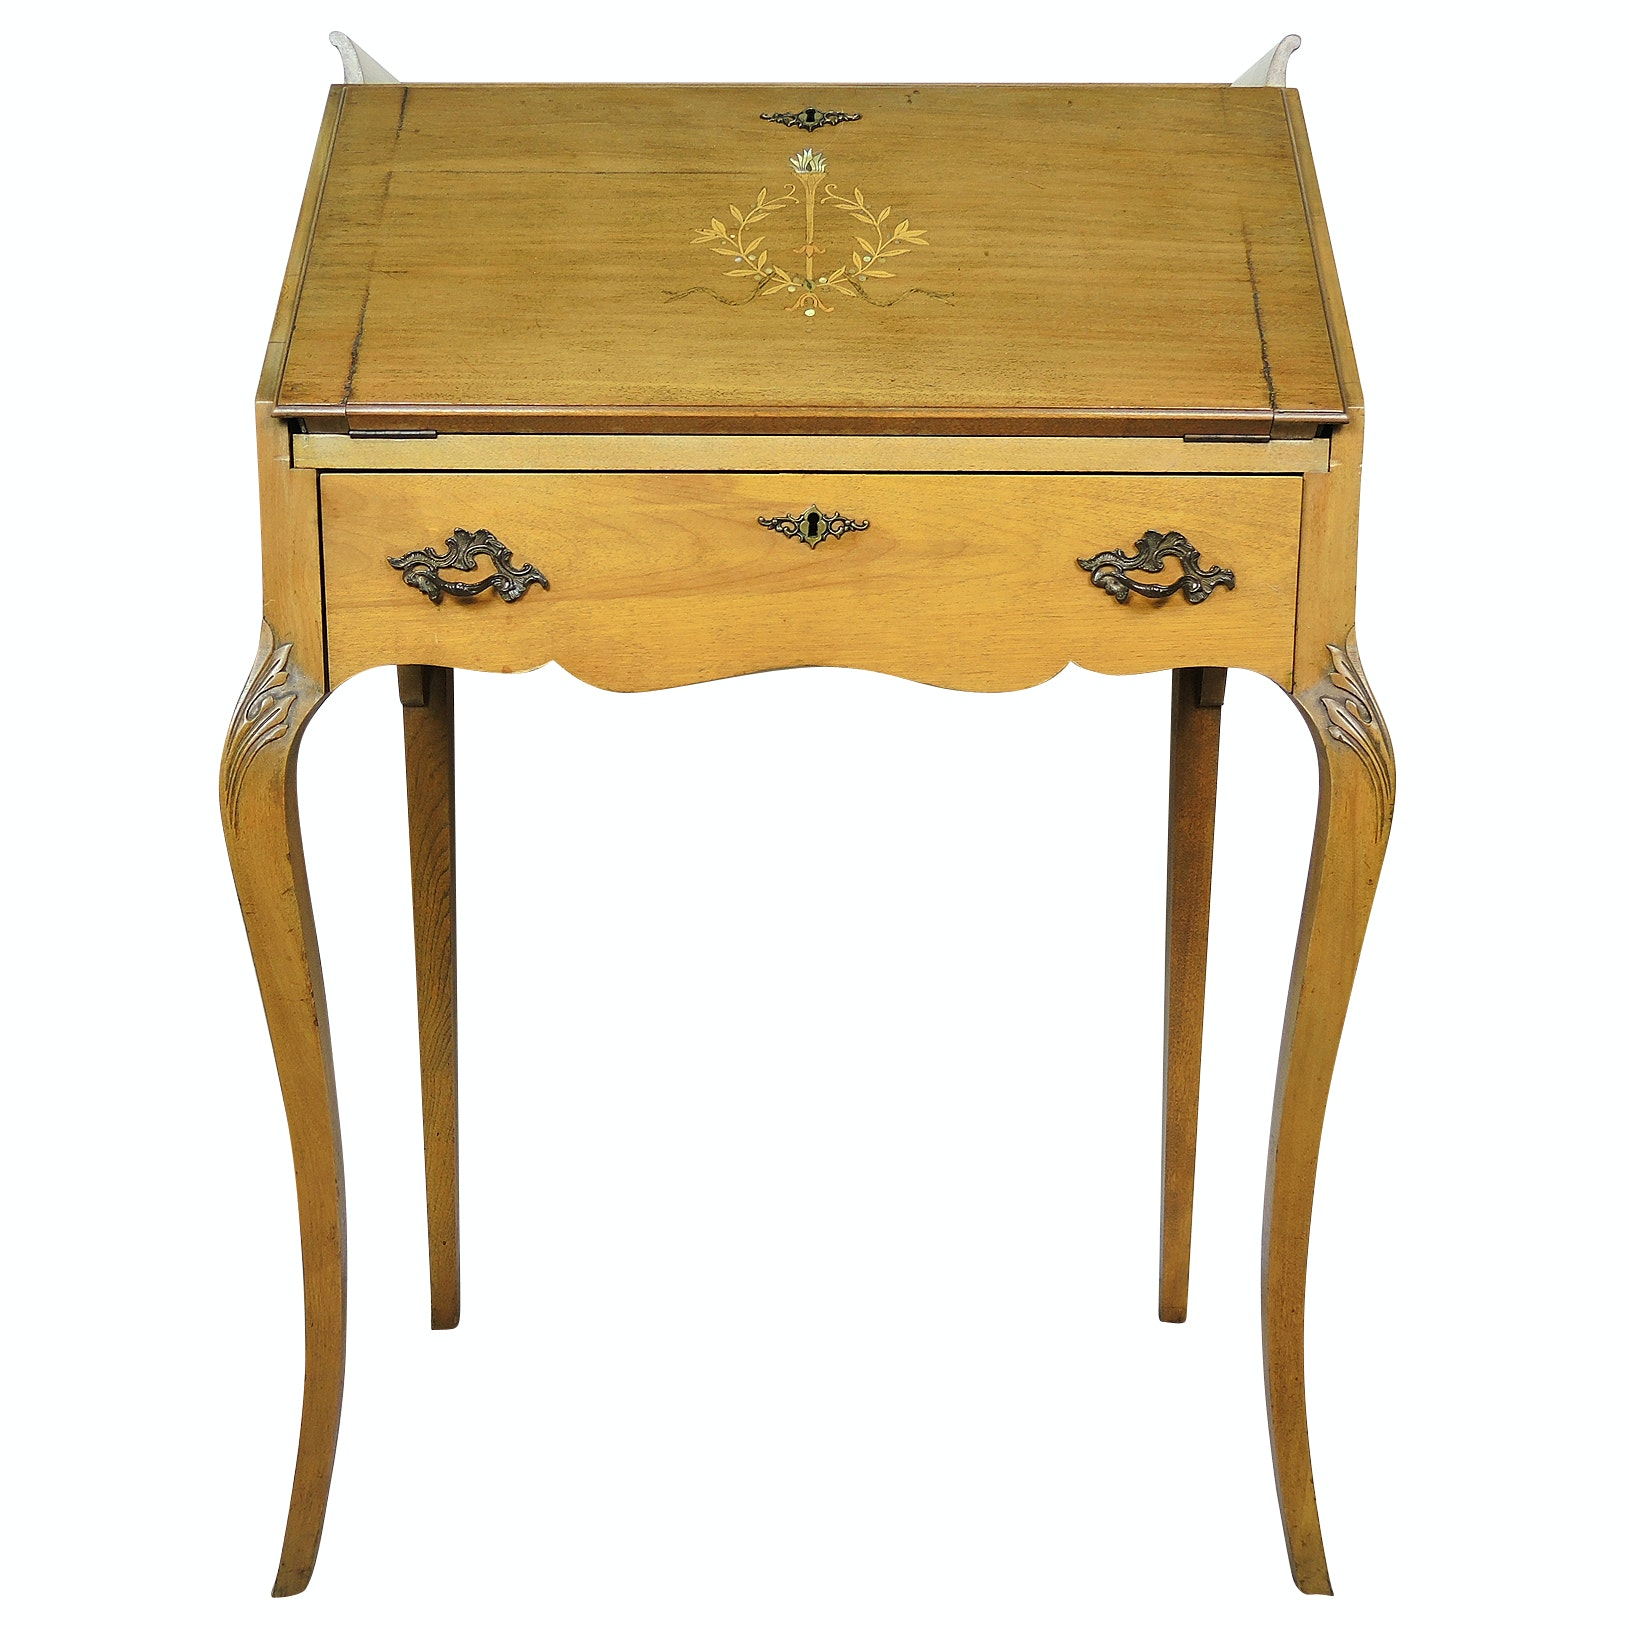 Louis XV Style Secretary Desk with Marquetry Inlay